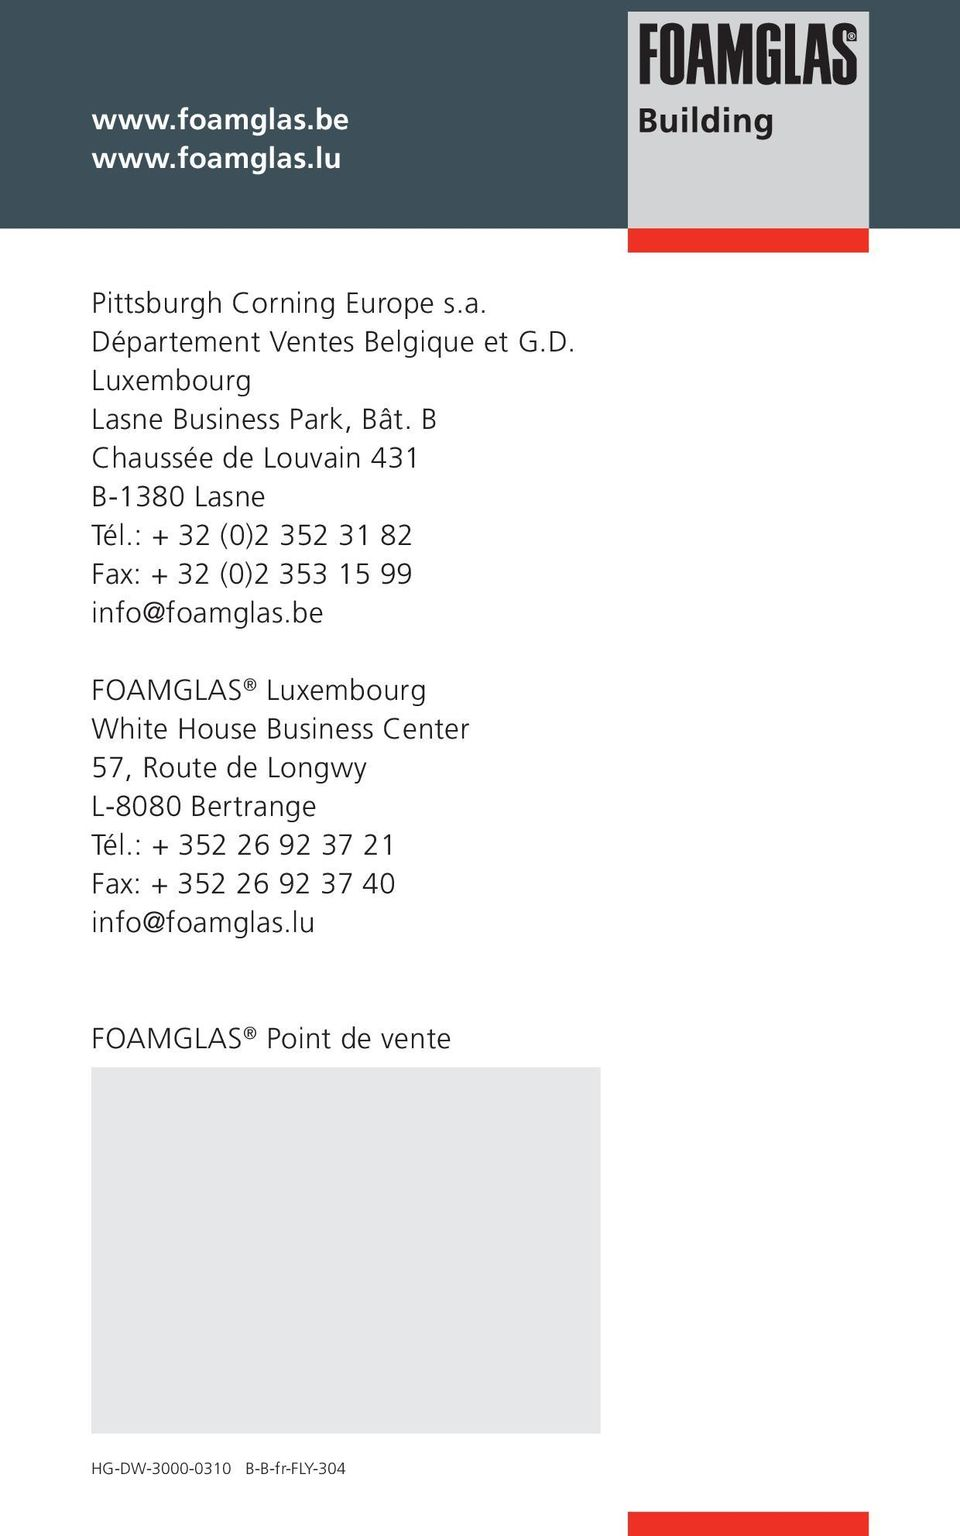 be FOAMGLAS Luxembourg White House Business Center 57, Route de Longwy L-8080 Bertrange Tél.